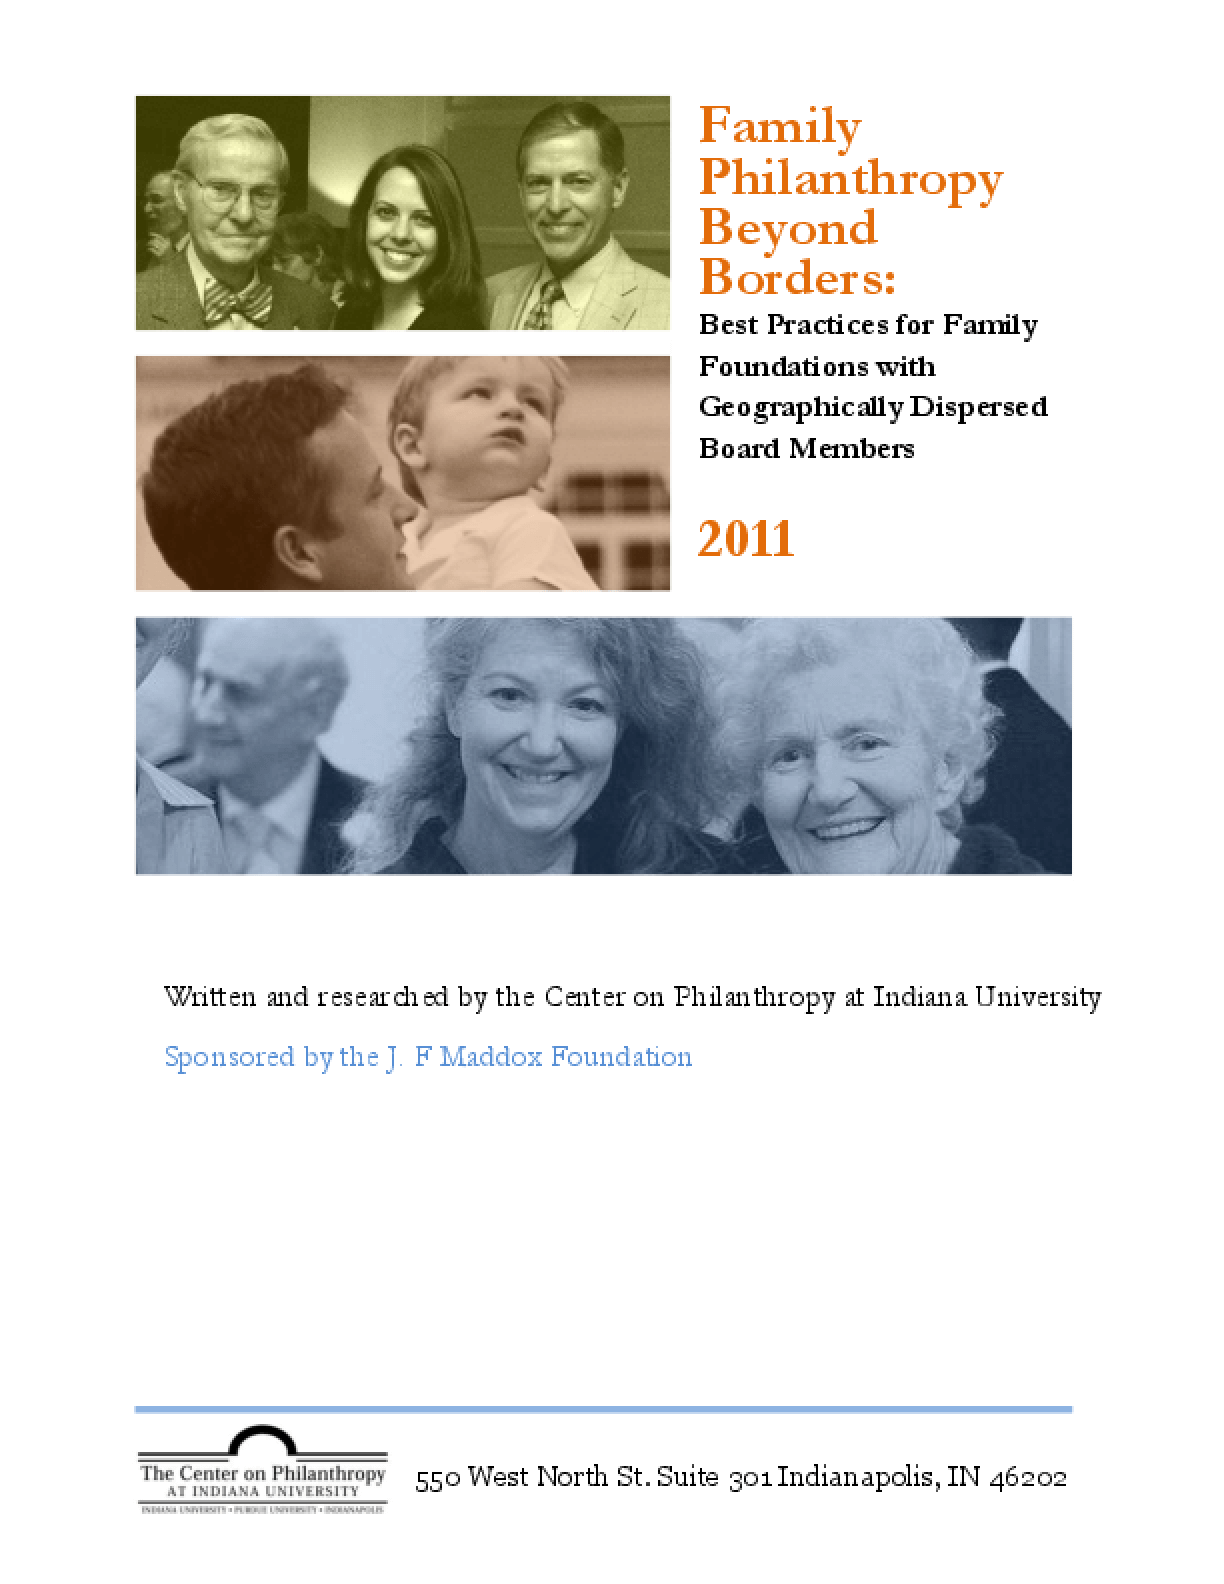 Family Philanthropy Beyond Borders: Best Practices for Family Foundations with Geographically Dispersed Board Members 2011